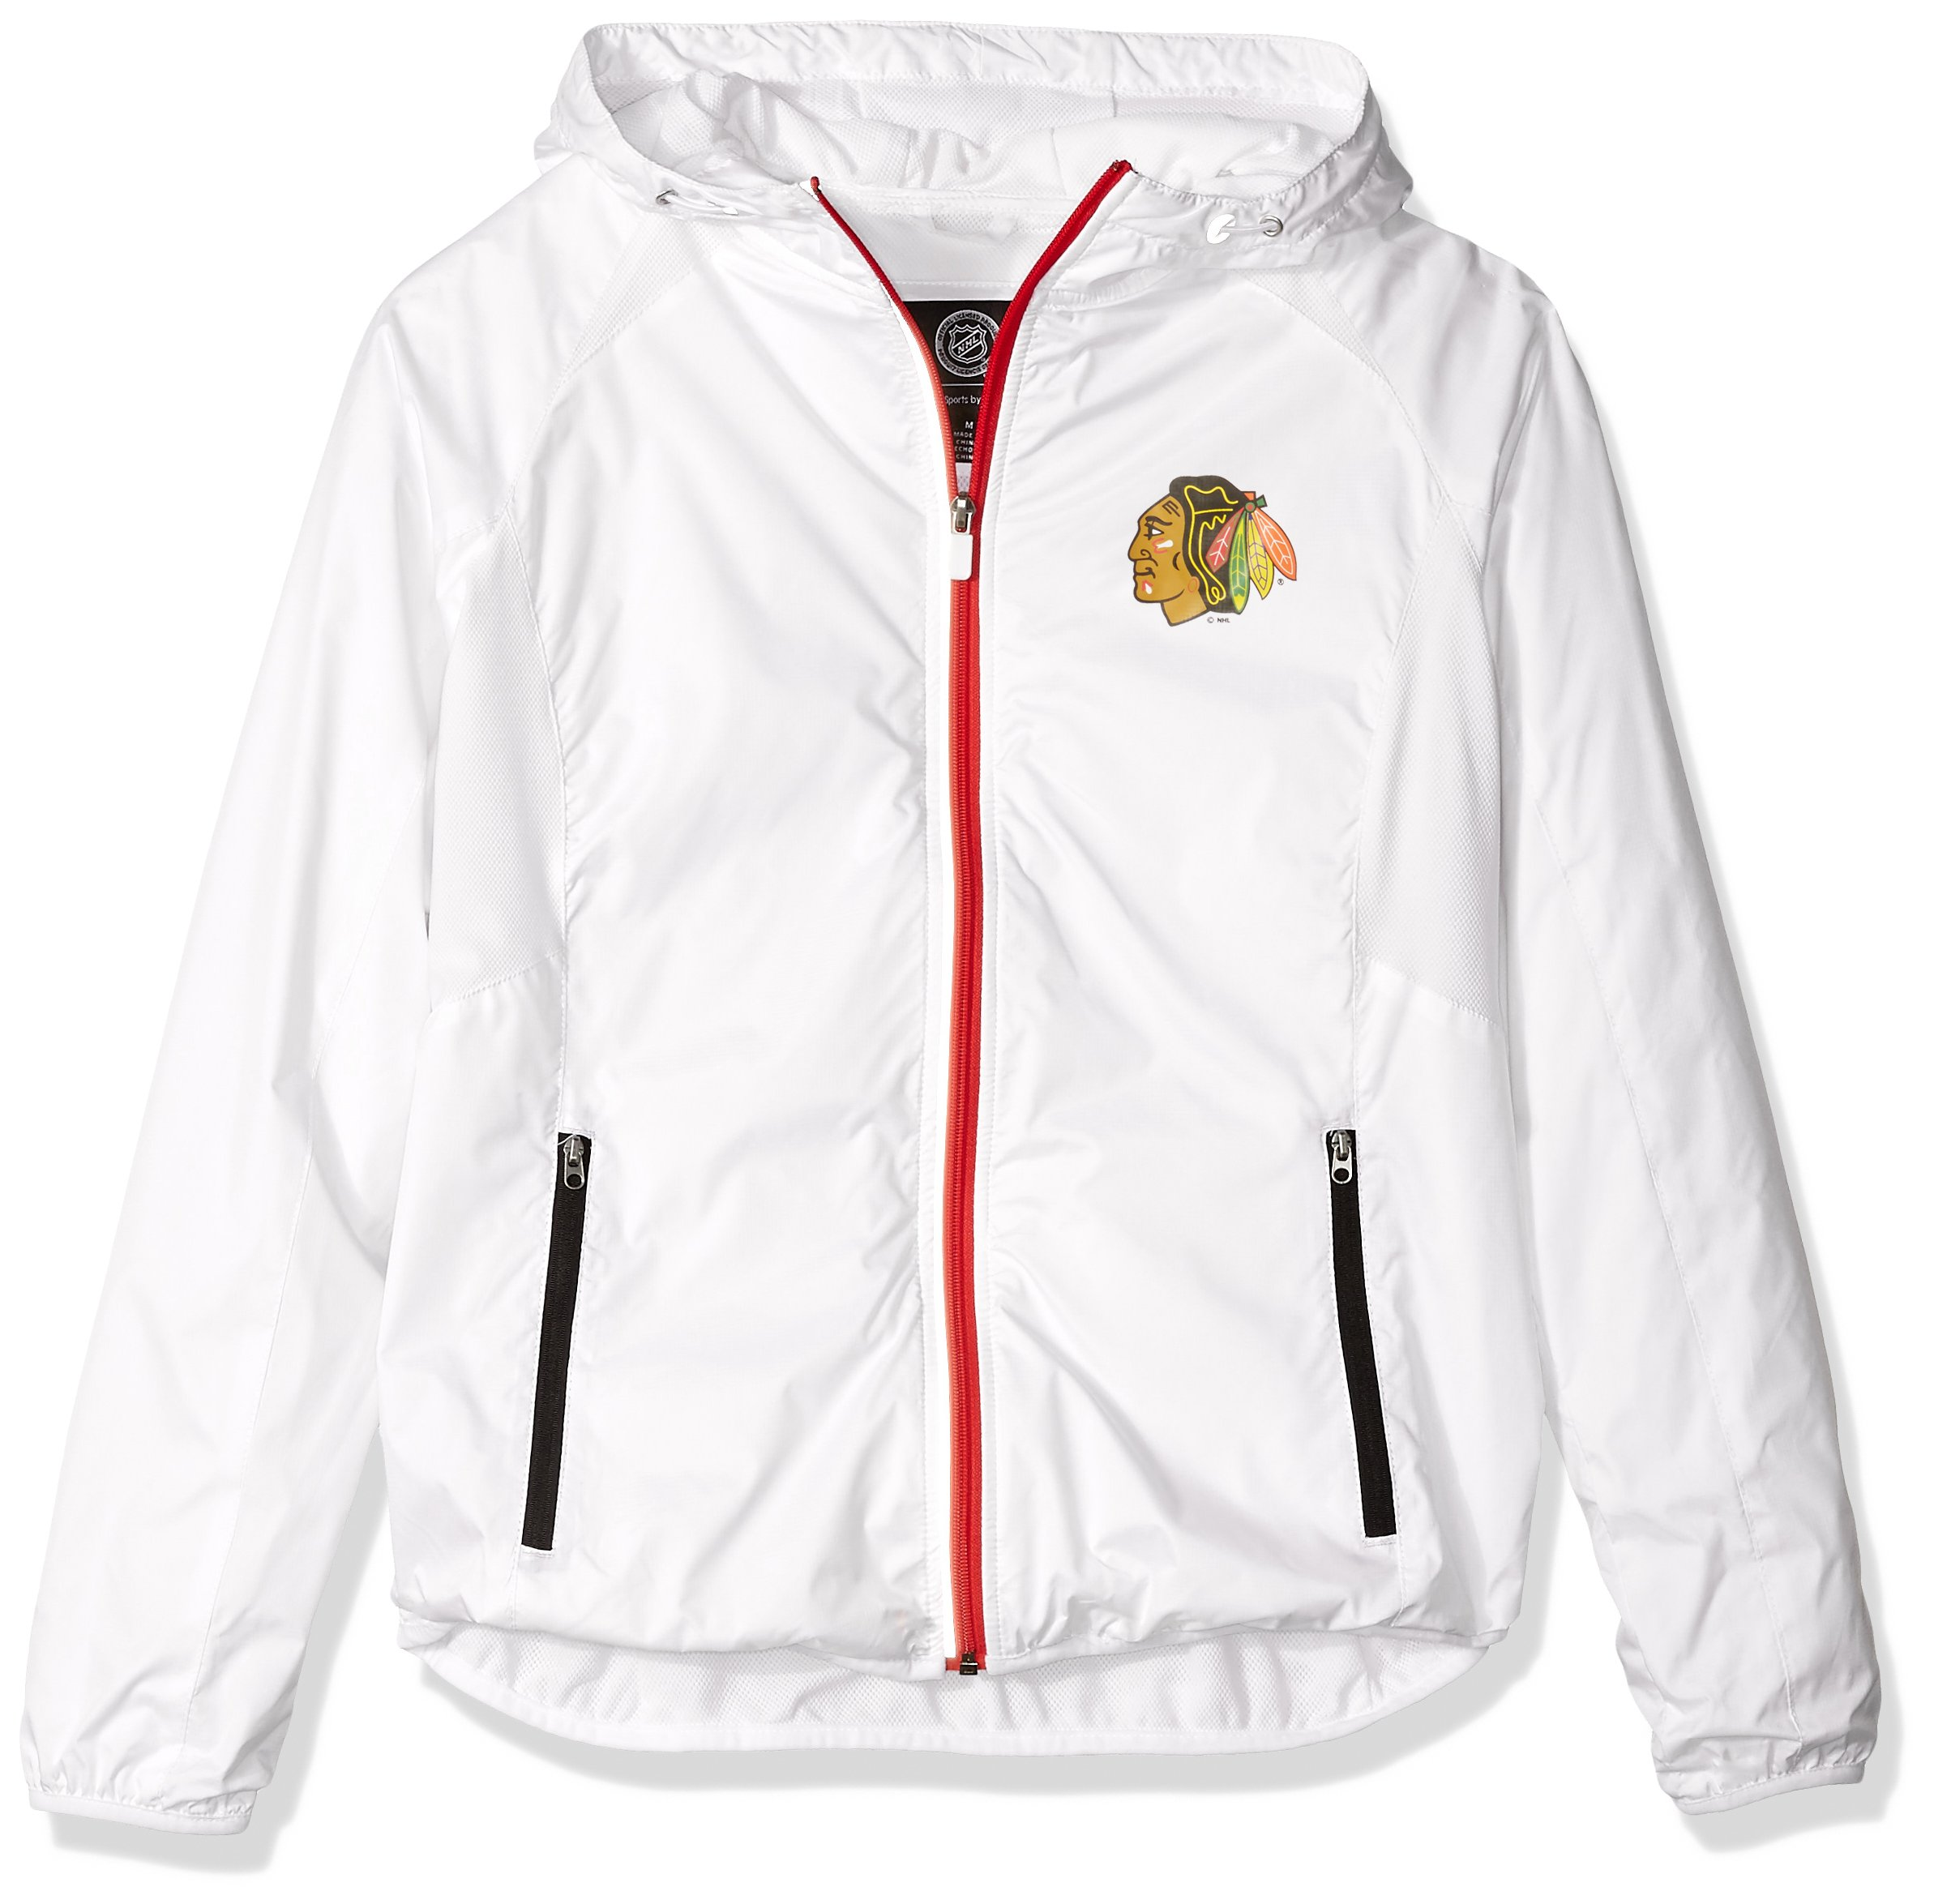 GIII For Her NHL Womens Kick Off Full Zip Jacket